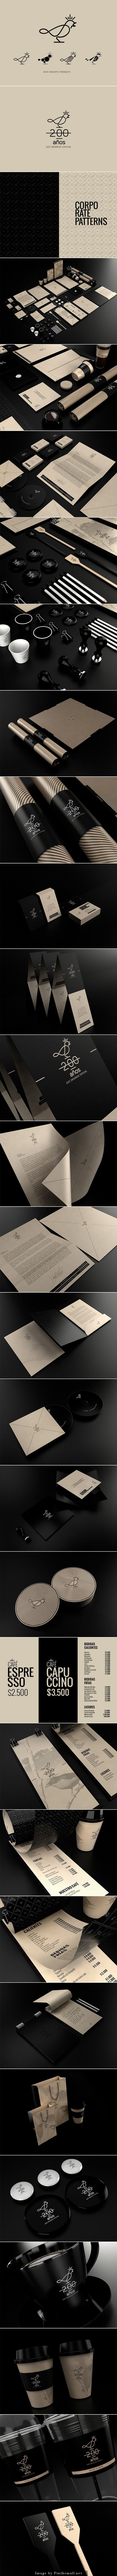 200 Years Coffee - Logo and Identity by David Espinosa IDS